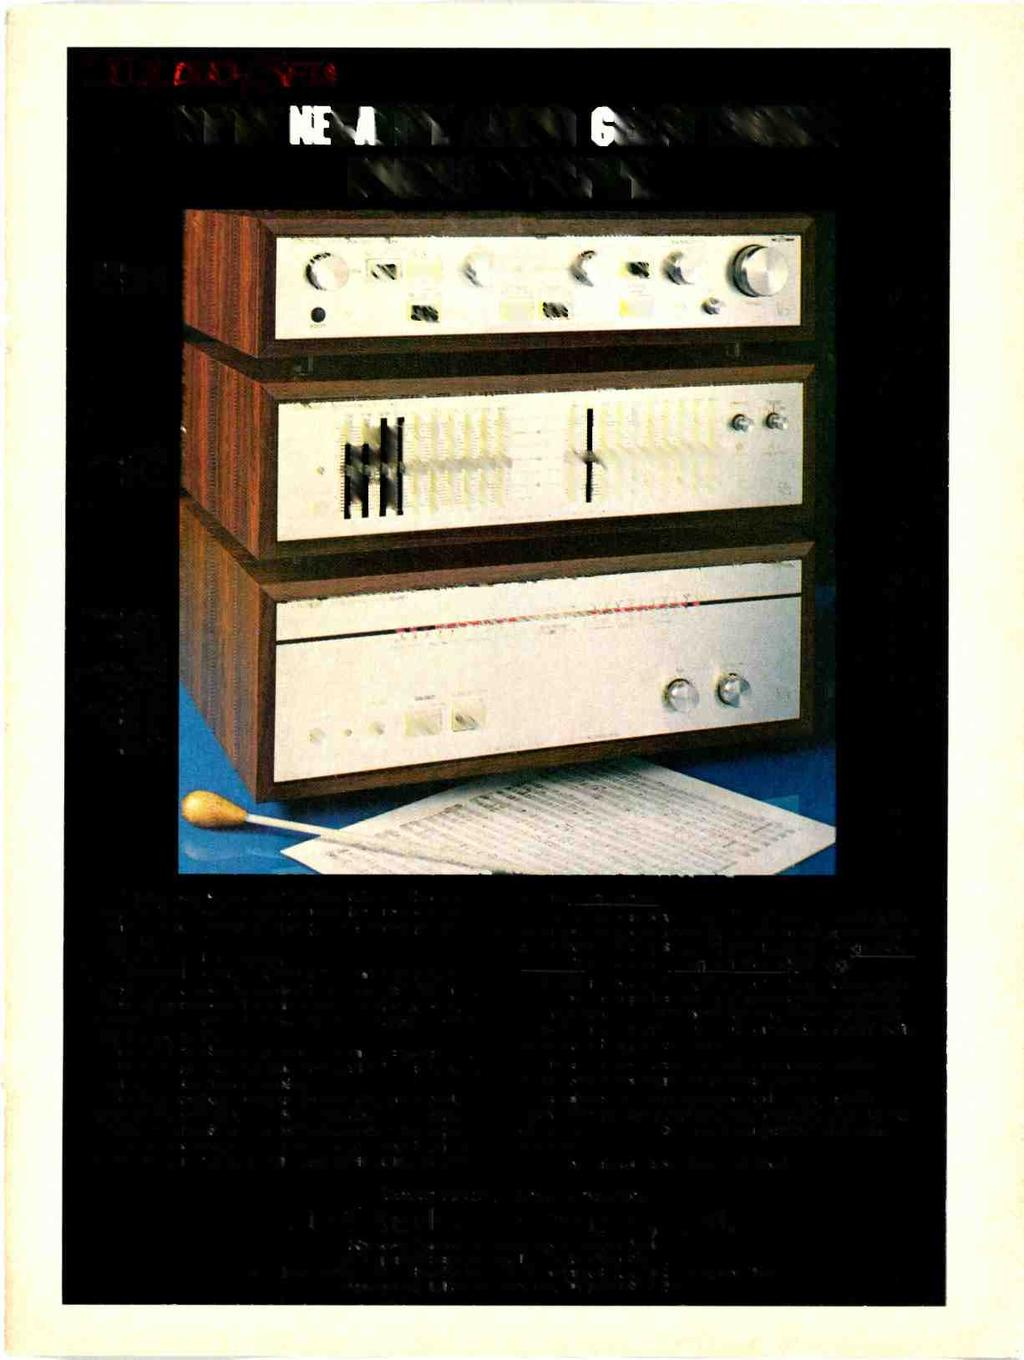 LUX DW%3ETA C120 Duo -Beta Stereo Control DC Preamplifier WE'RE efl Il'i ABOUT CHEAT SOUND. DOUBLE NECANVE. uixw+n C ilk ( I 0.120A 10 -Band Graphic Reticency Equalizer.